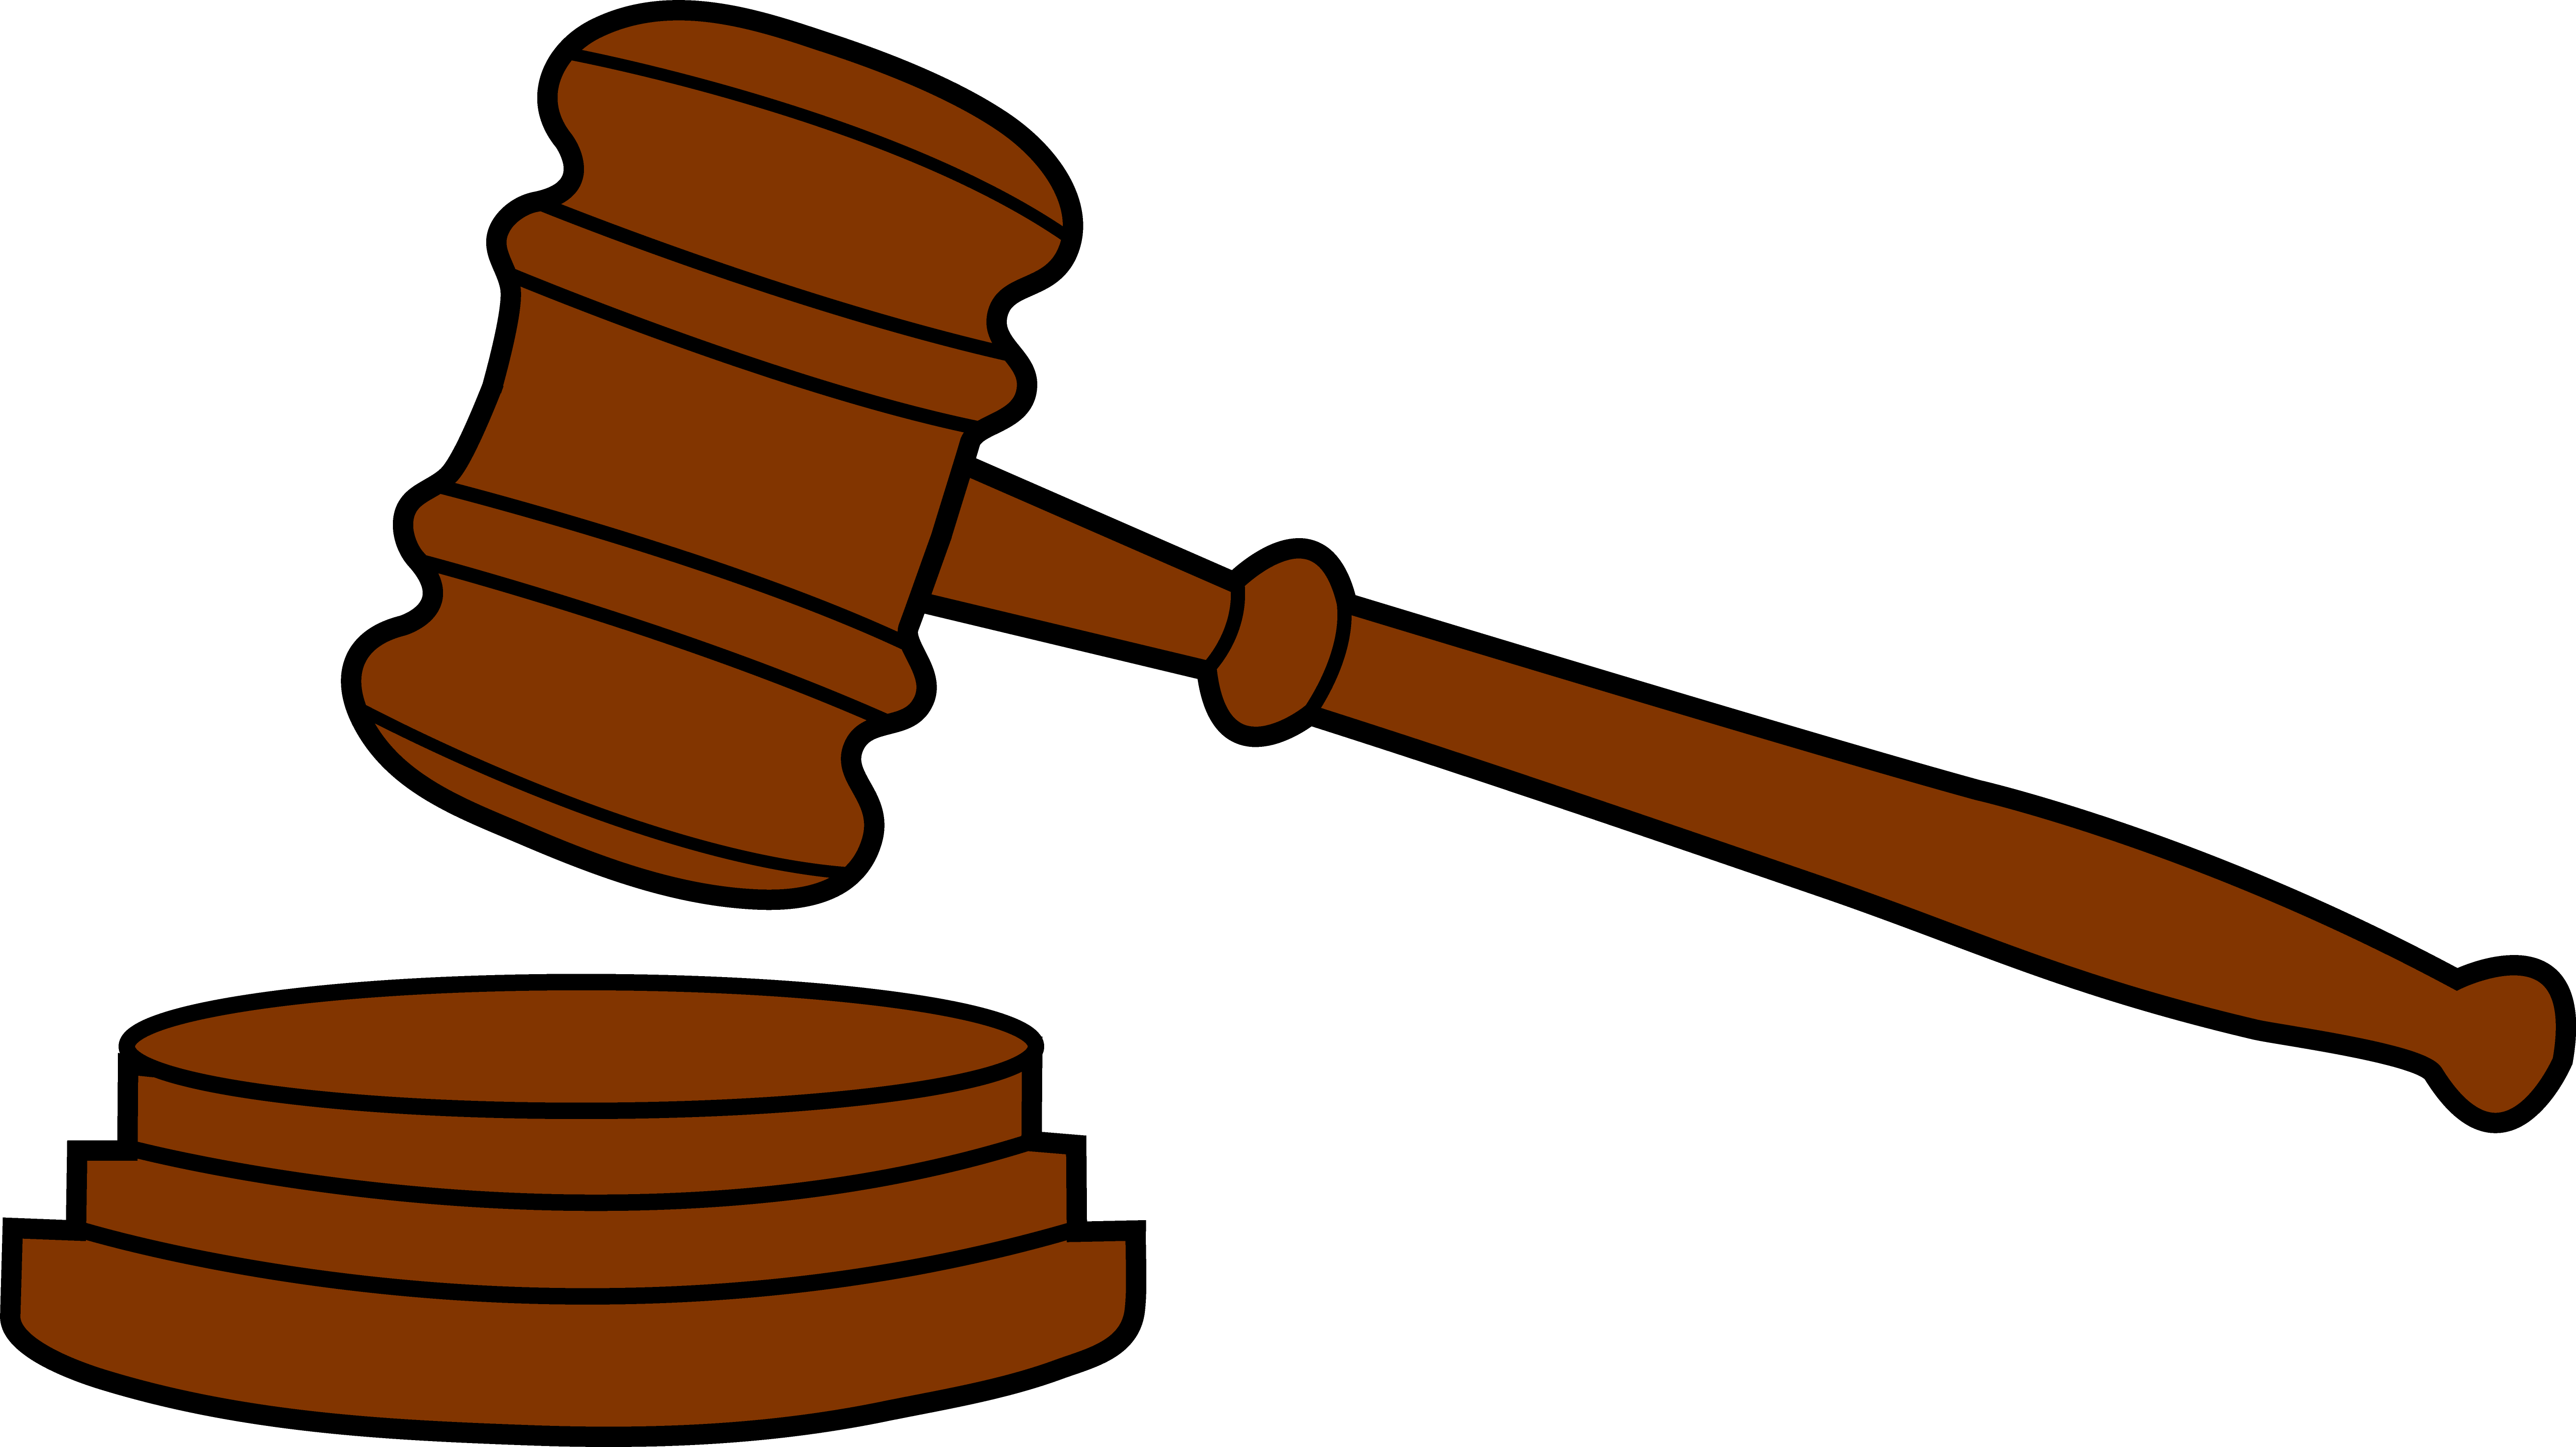 symbols for lawyers clipart best